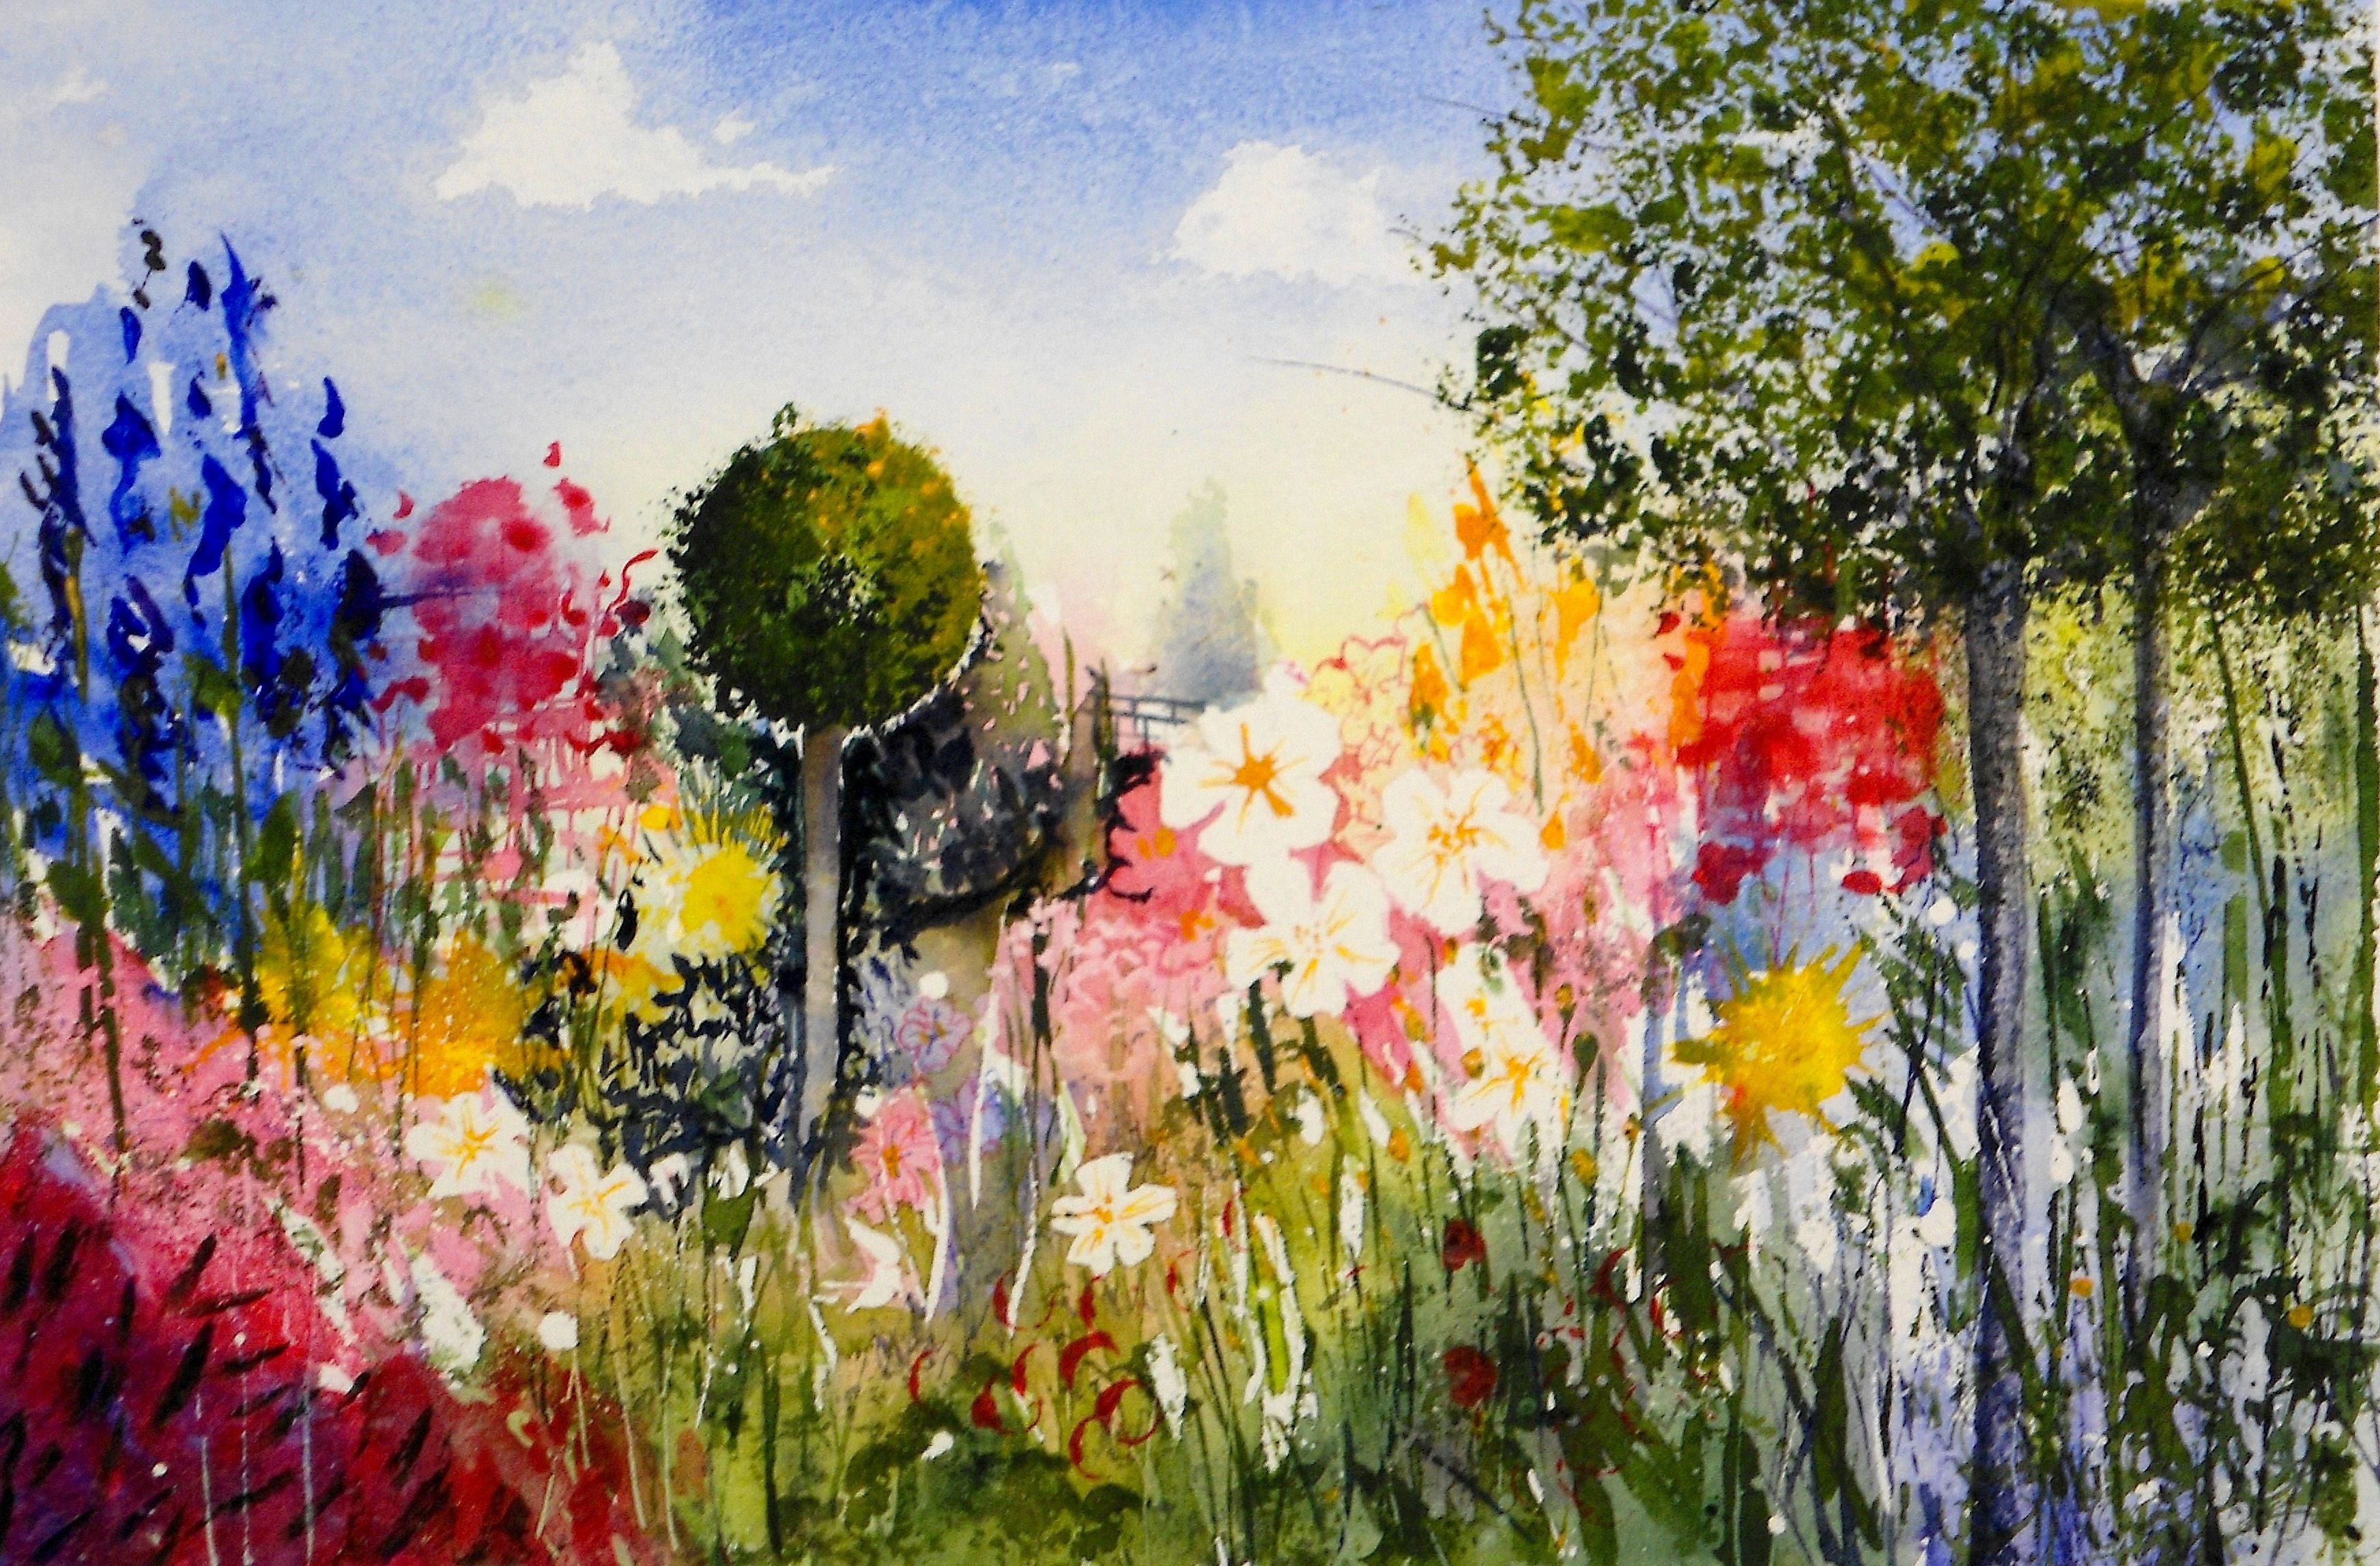 Monet Vase Of Flowers Of Stock Of Flower Garden Paintings Wall Art Design within Flower Garden Paintings Photograph Wild Flower Garden Video Lesson On Using Various Painting tools by Of